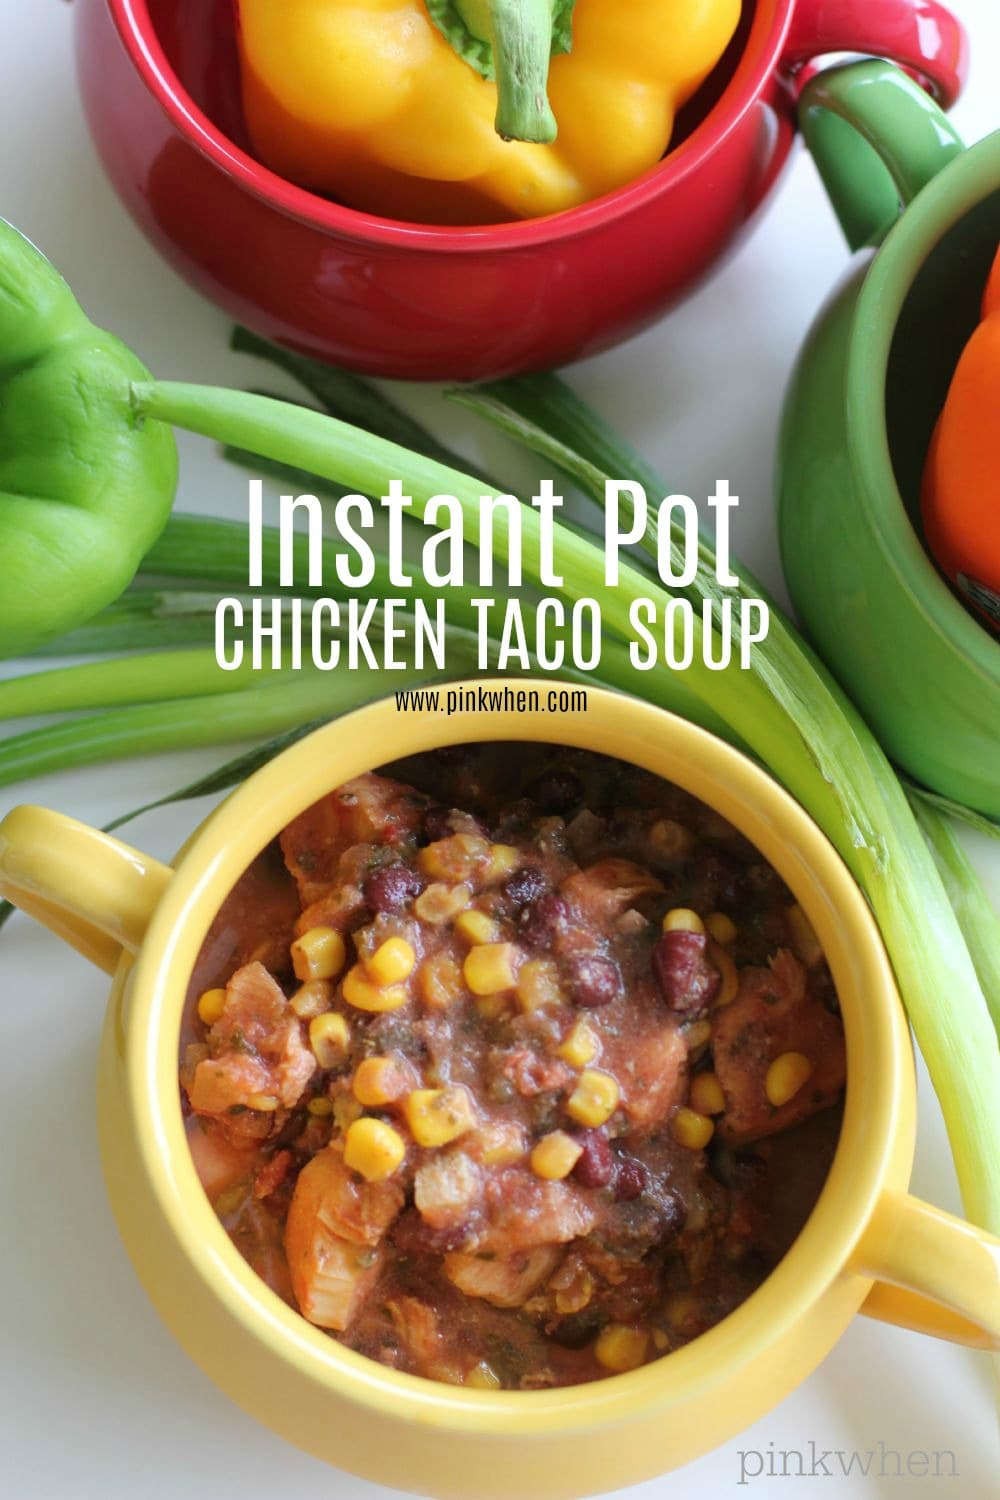 Instant Pot Chicken Taco Soup is a 30-minute meal full of flavor! This deliciously hearty soup is perfect for dinner and great to double for freezer meals. Use the remaining leftovers for a quick and easy lunch. #chickentacosoup #instantpotchickentacosoup #instantpotrecipes